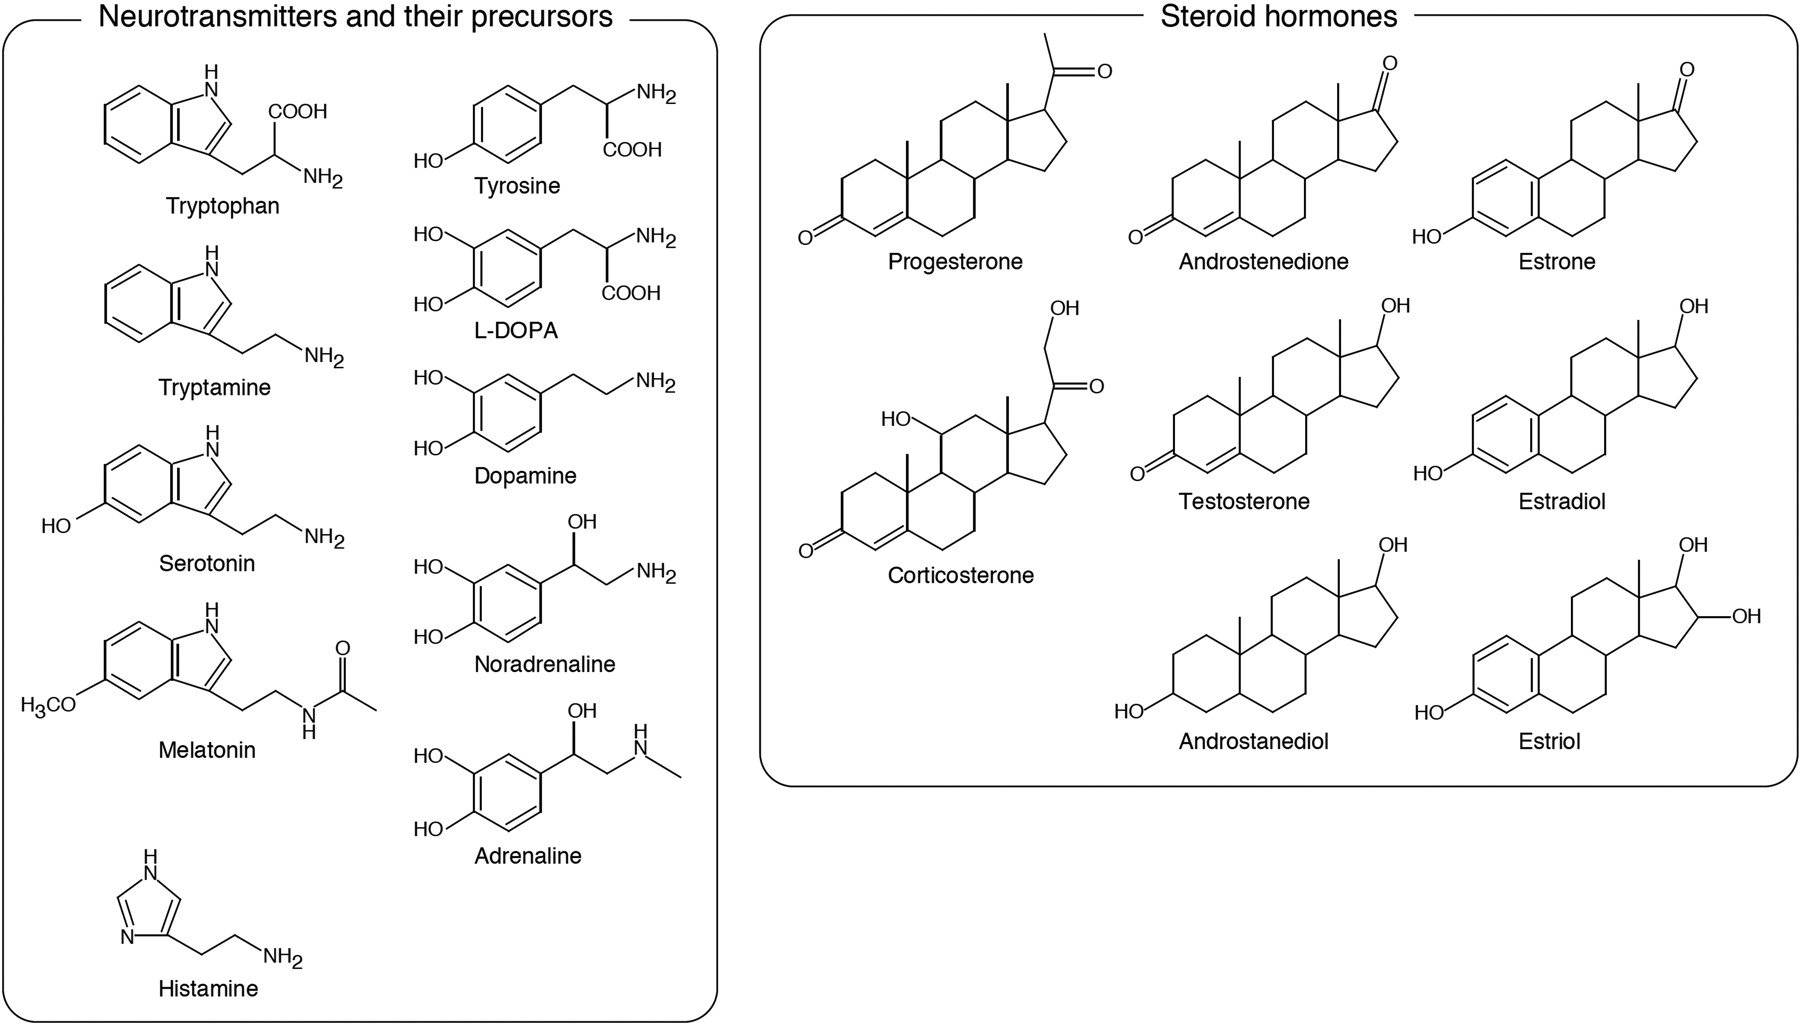 Inhibitory Effects of Neurotransmitters and Steroids on